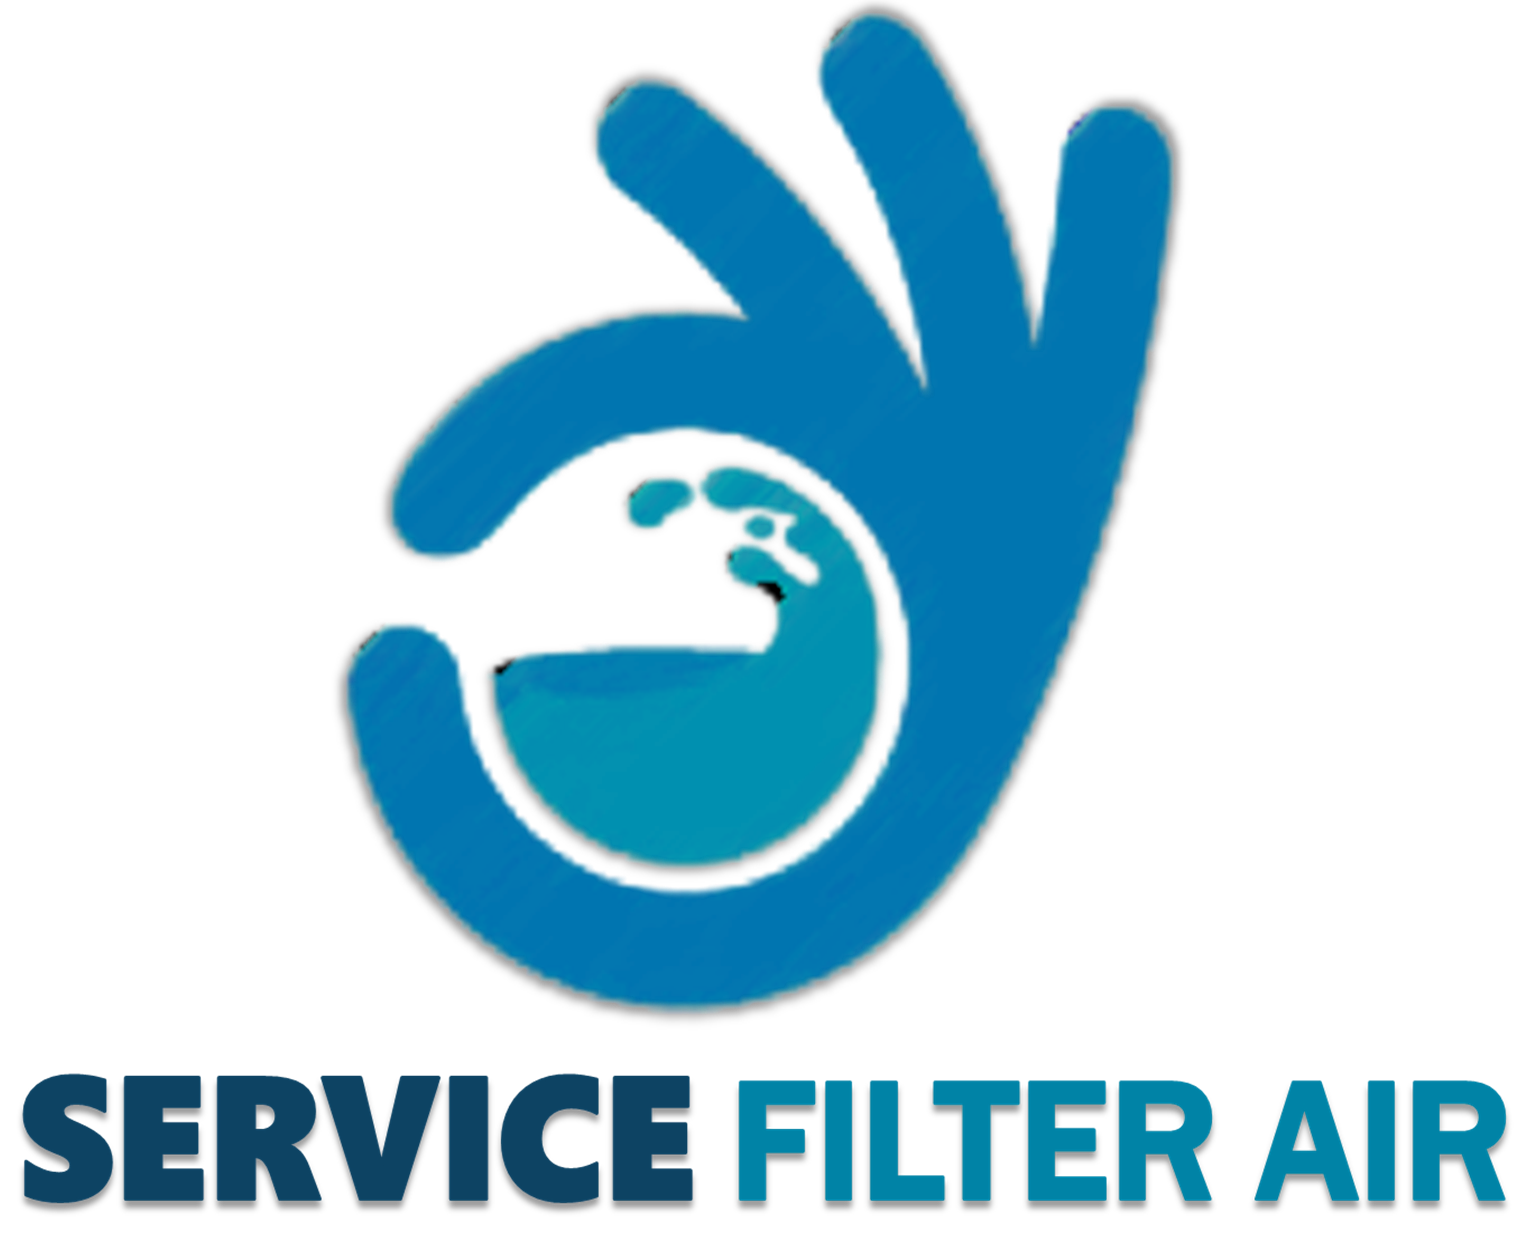 SERVICE FILTER AIR | servicefilterair.id